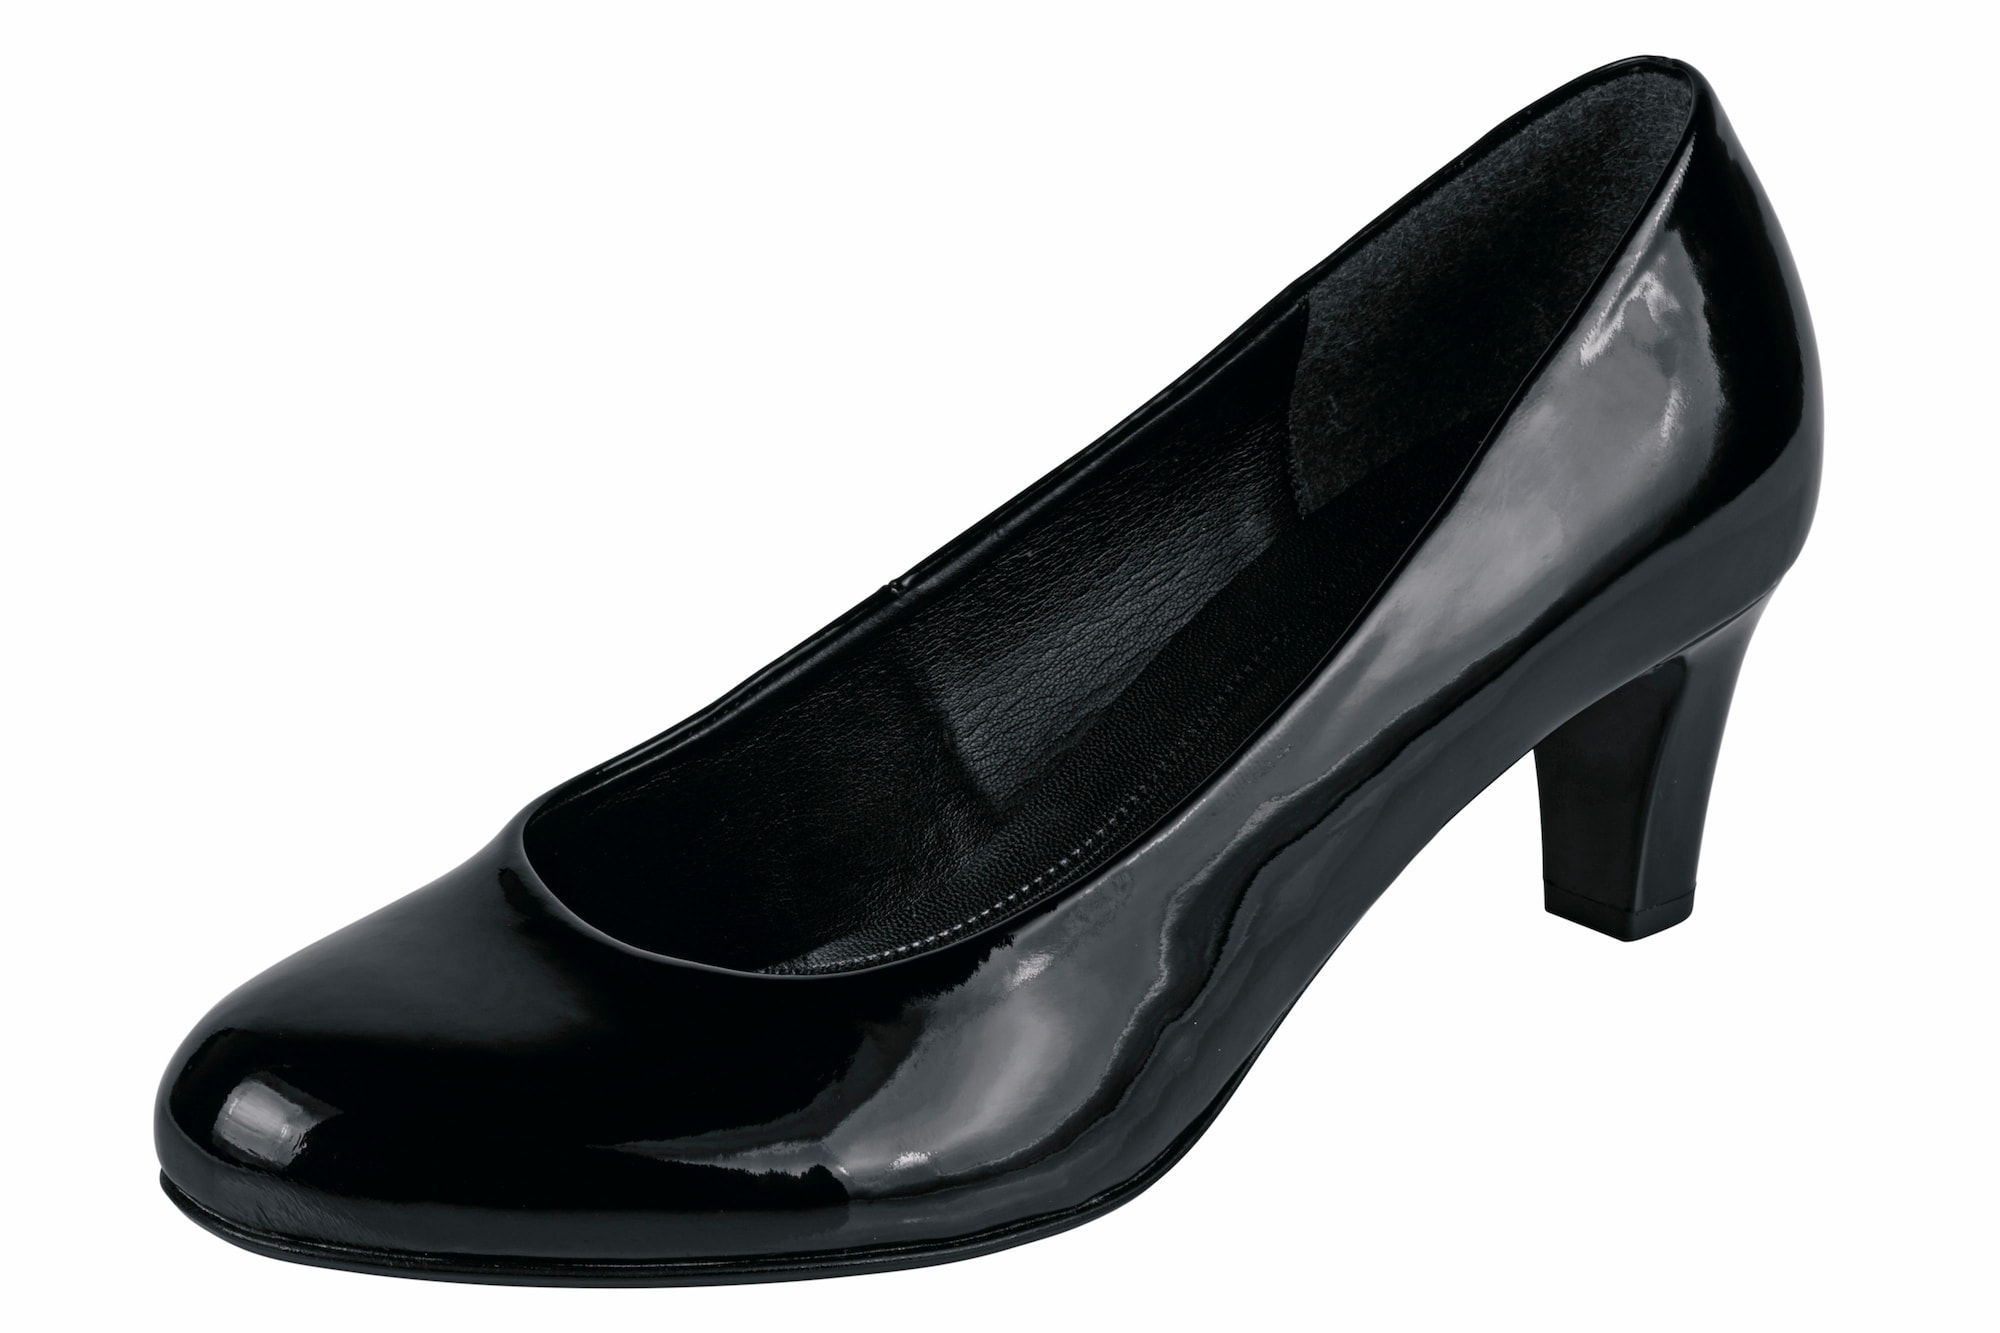 wholesale dealer eb26e 7f80a AboutYou | Damen GABOR GABOR Pumps in Lack-Optik braun ...